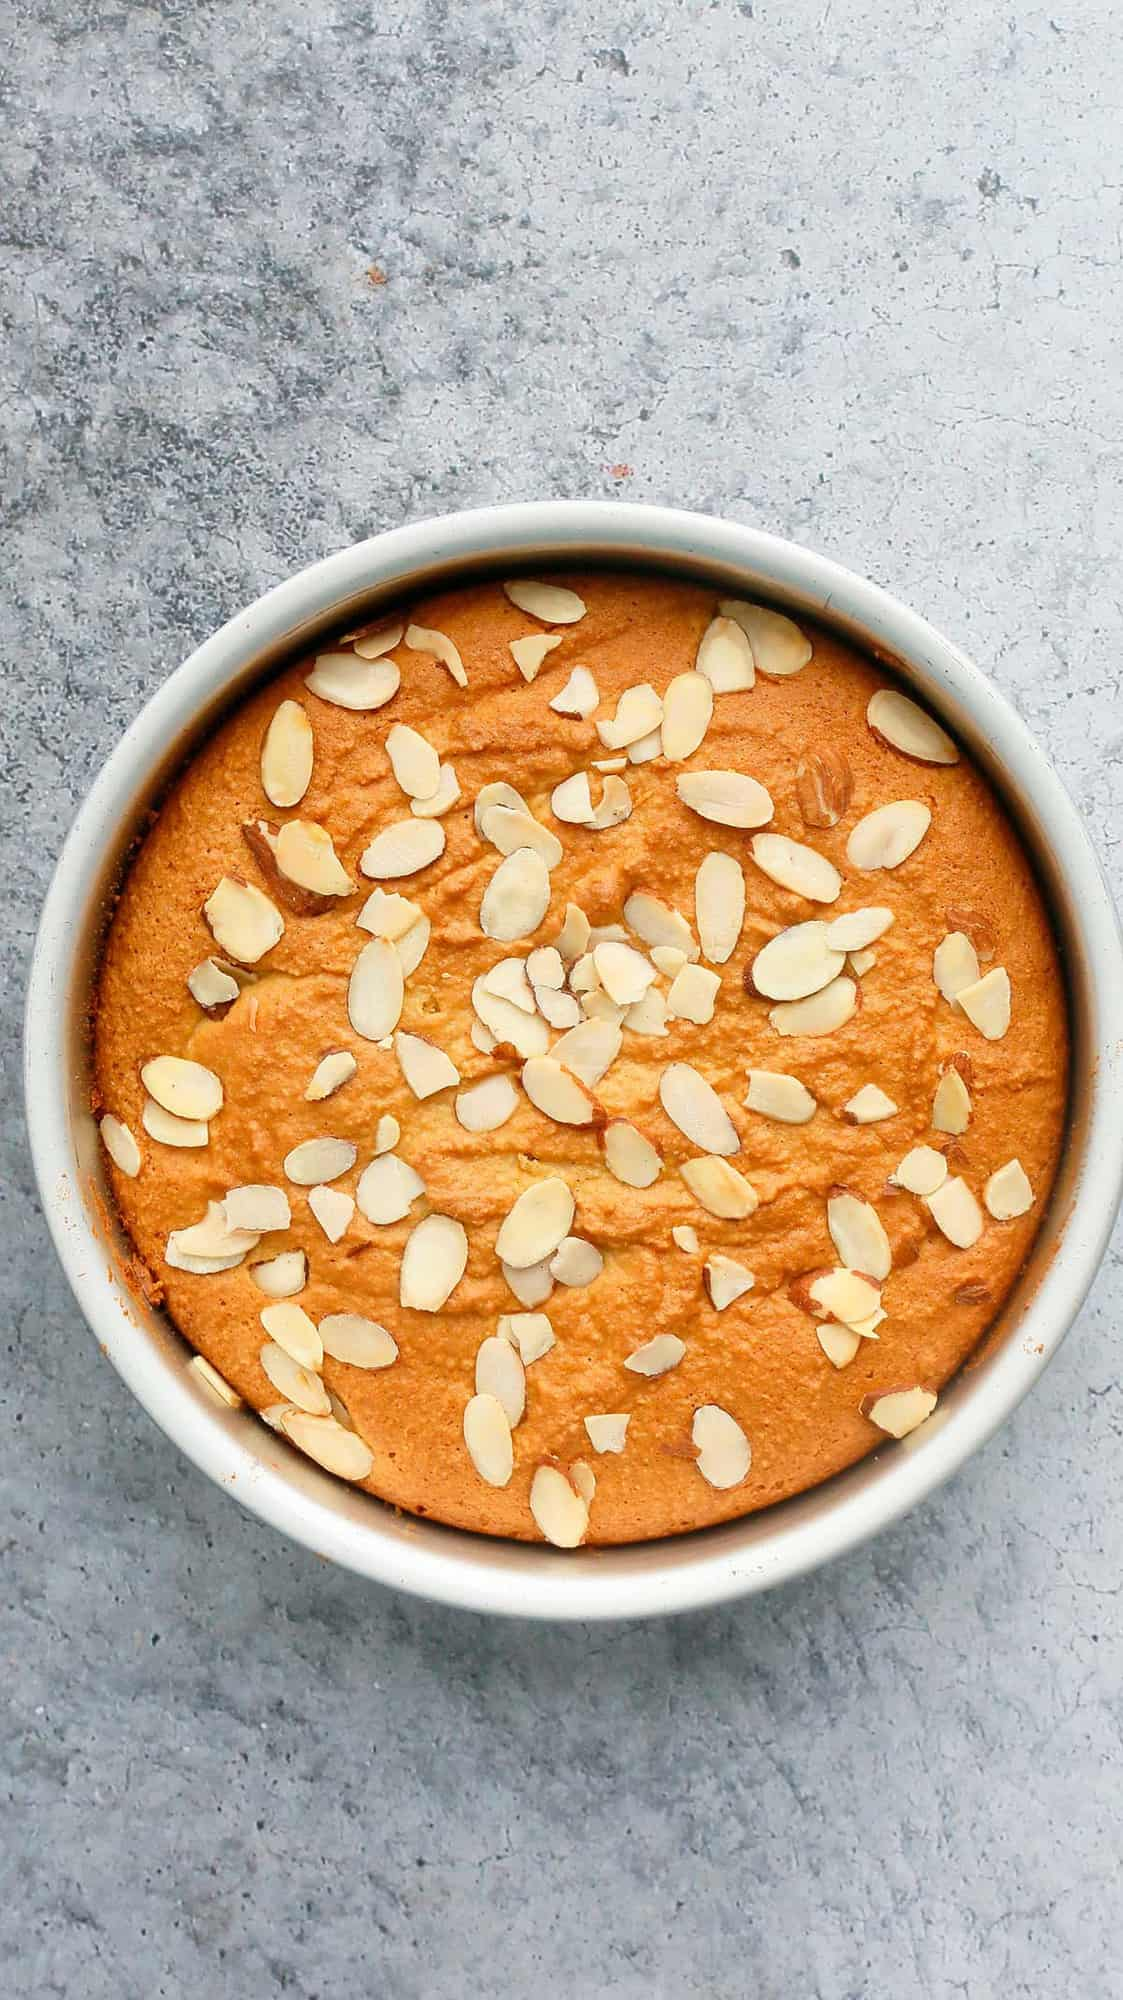 Freshly baked cake with almond flour and topped with sliced almonds